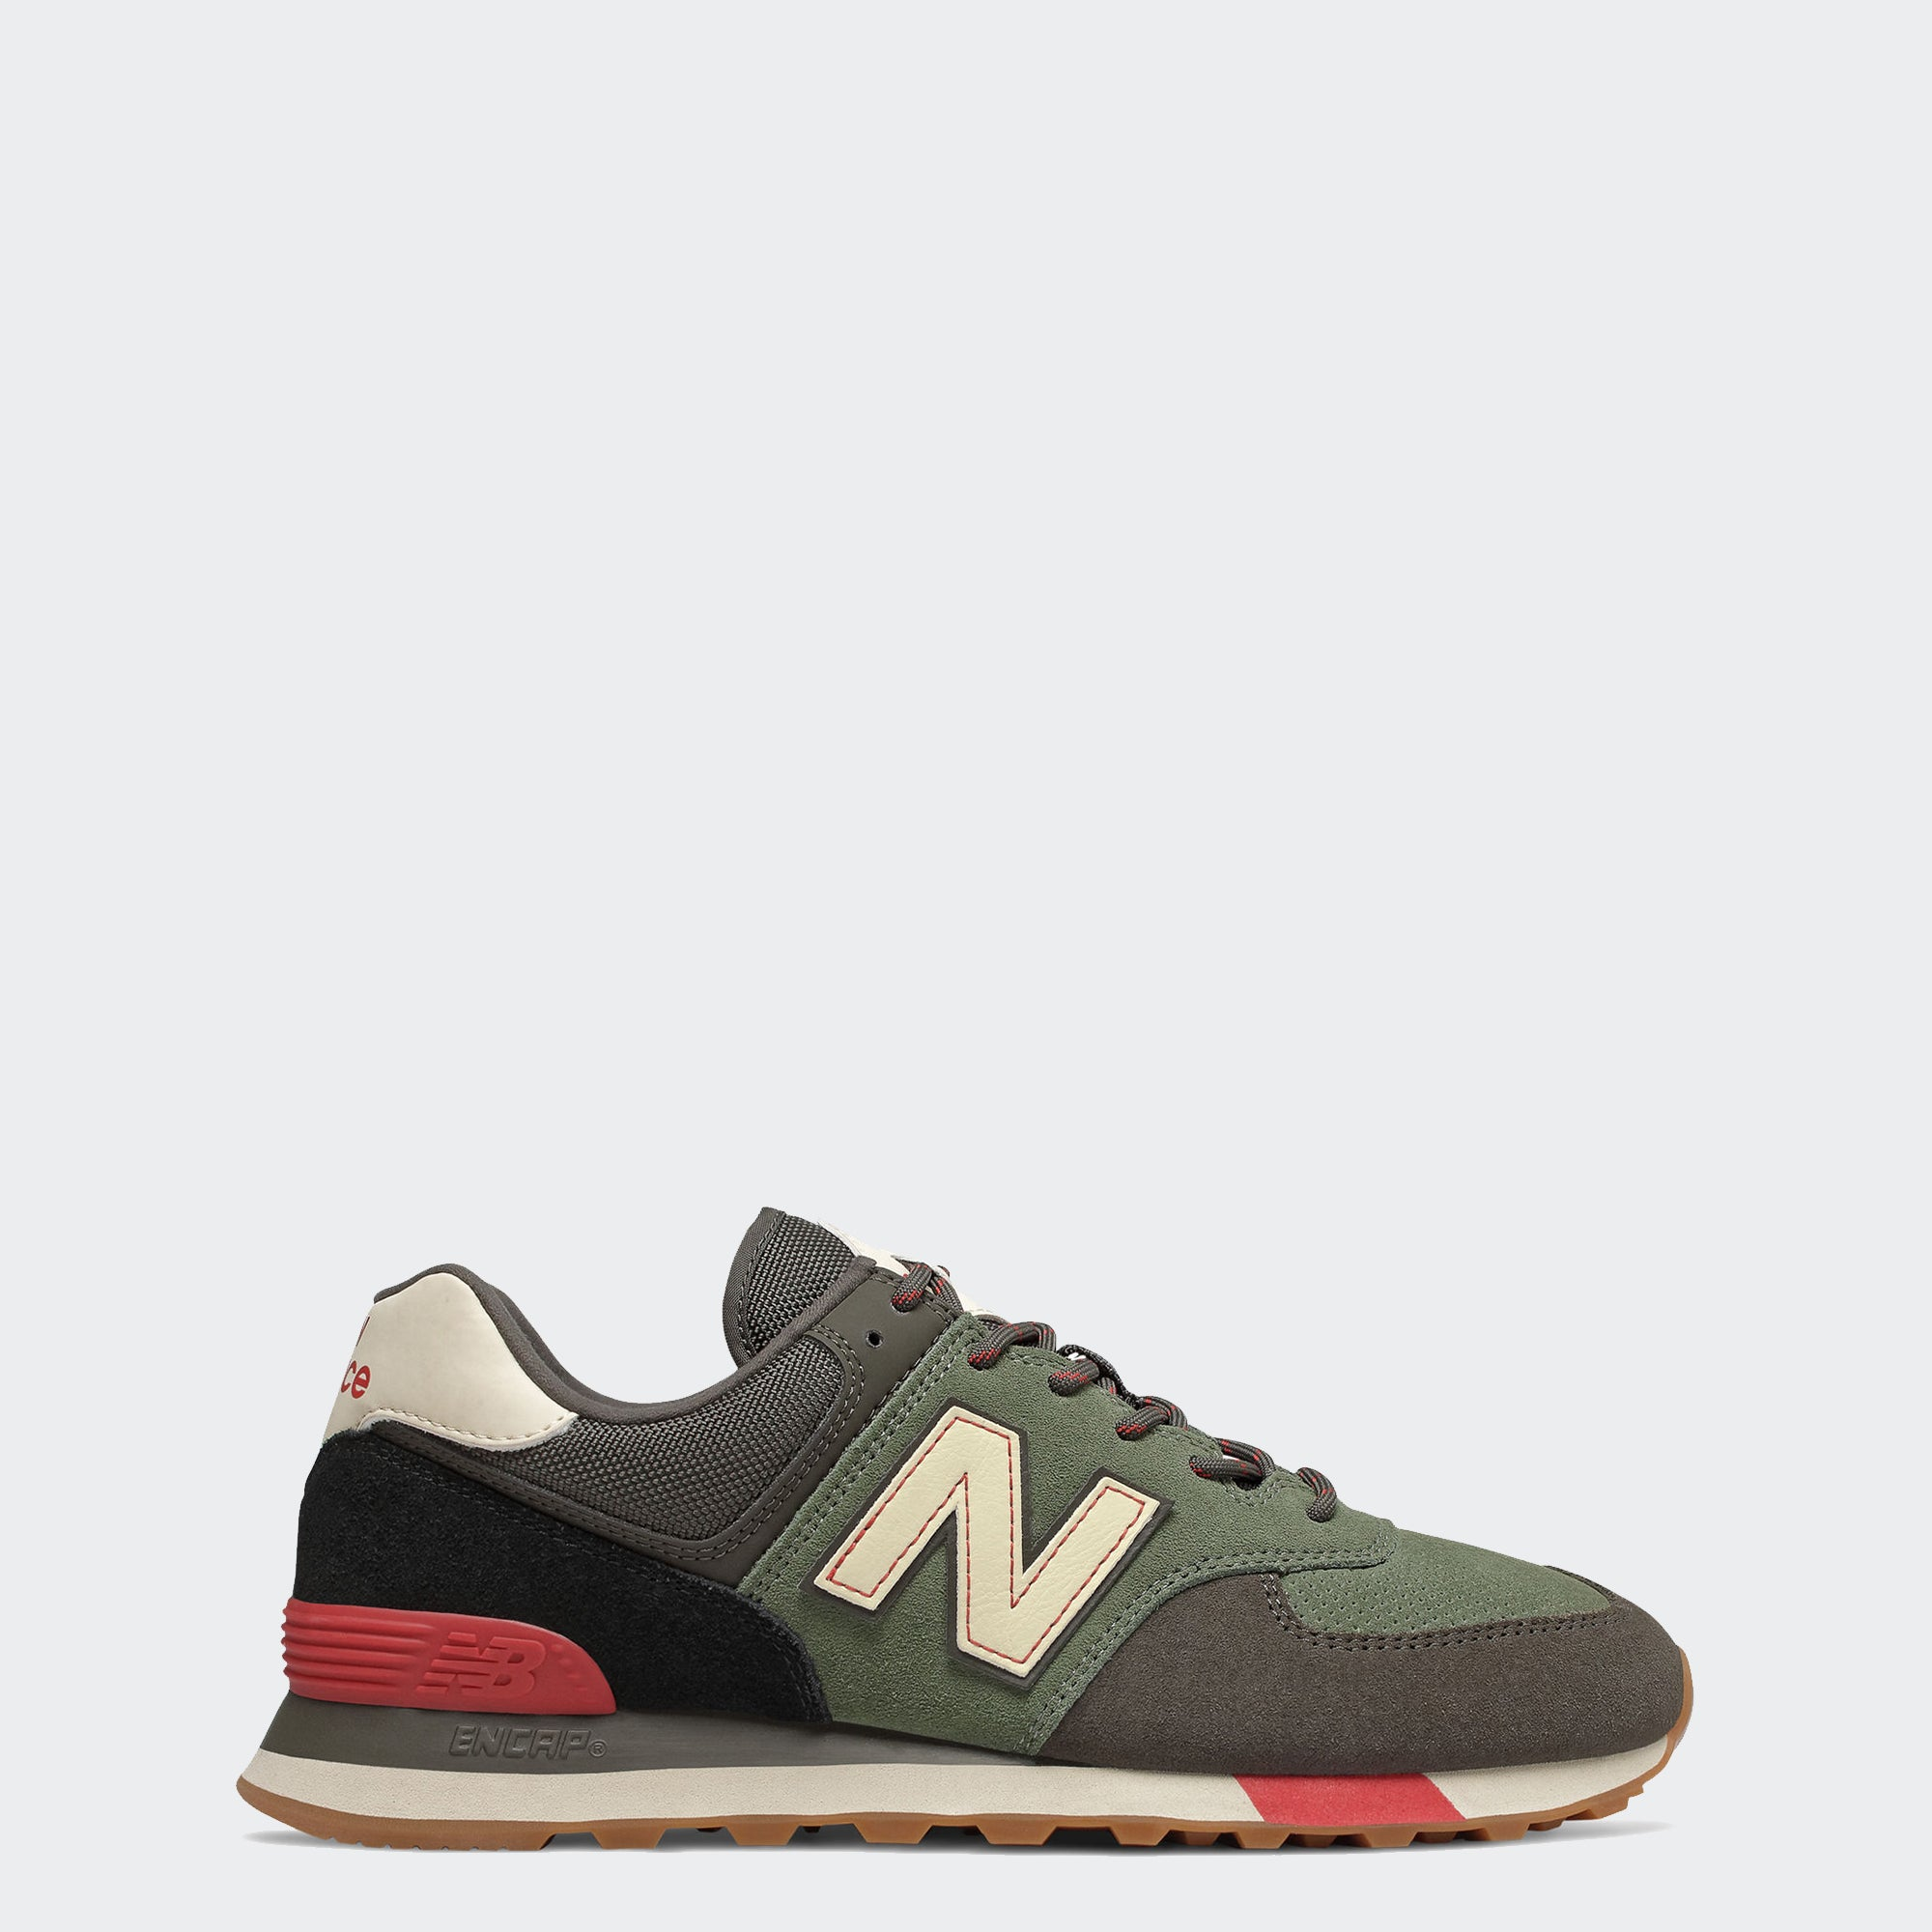 New Balance 574 Shoes Camo Green ML574JHR | Chicago City Sports